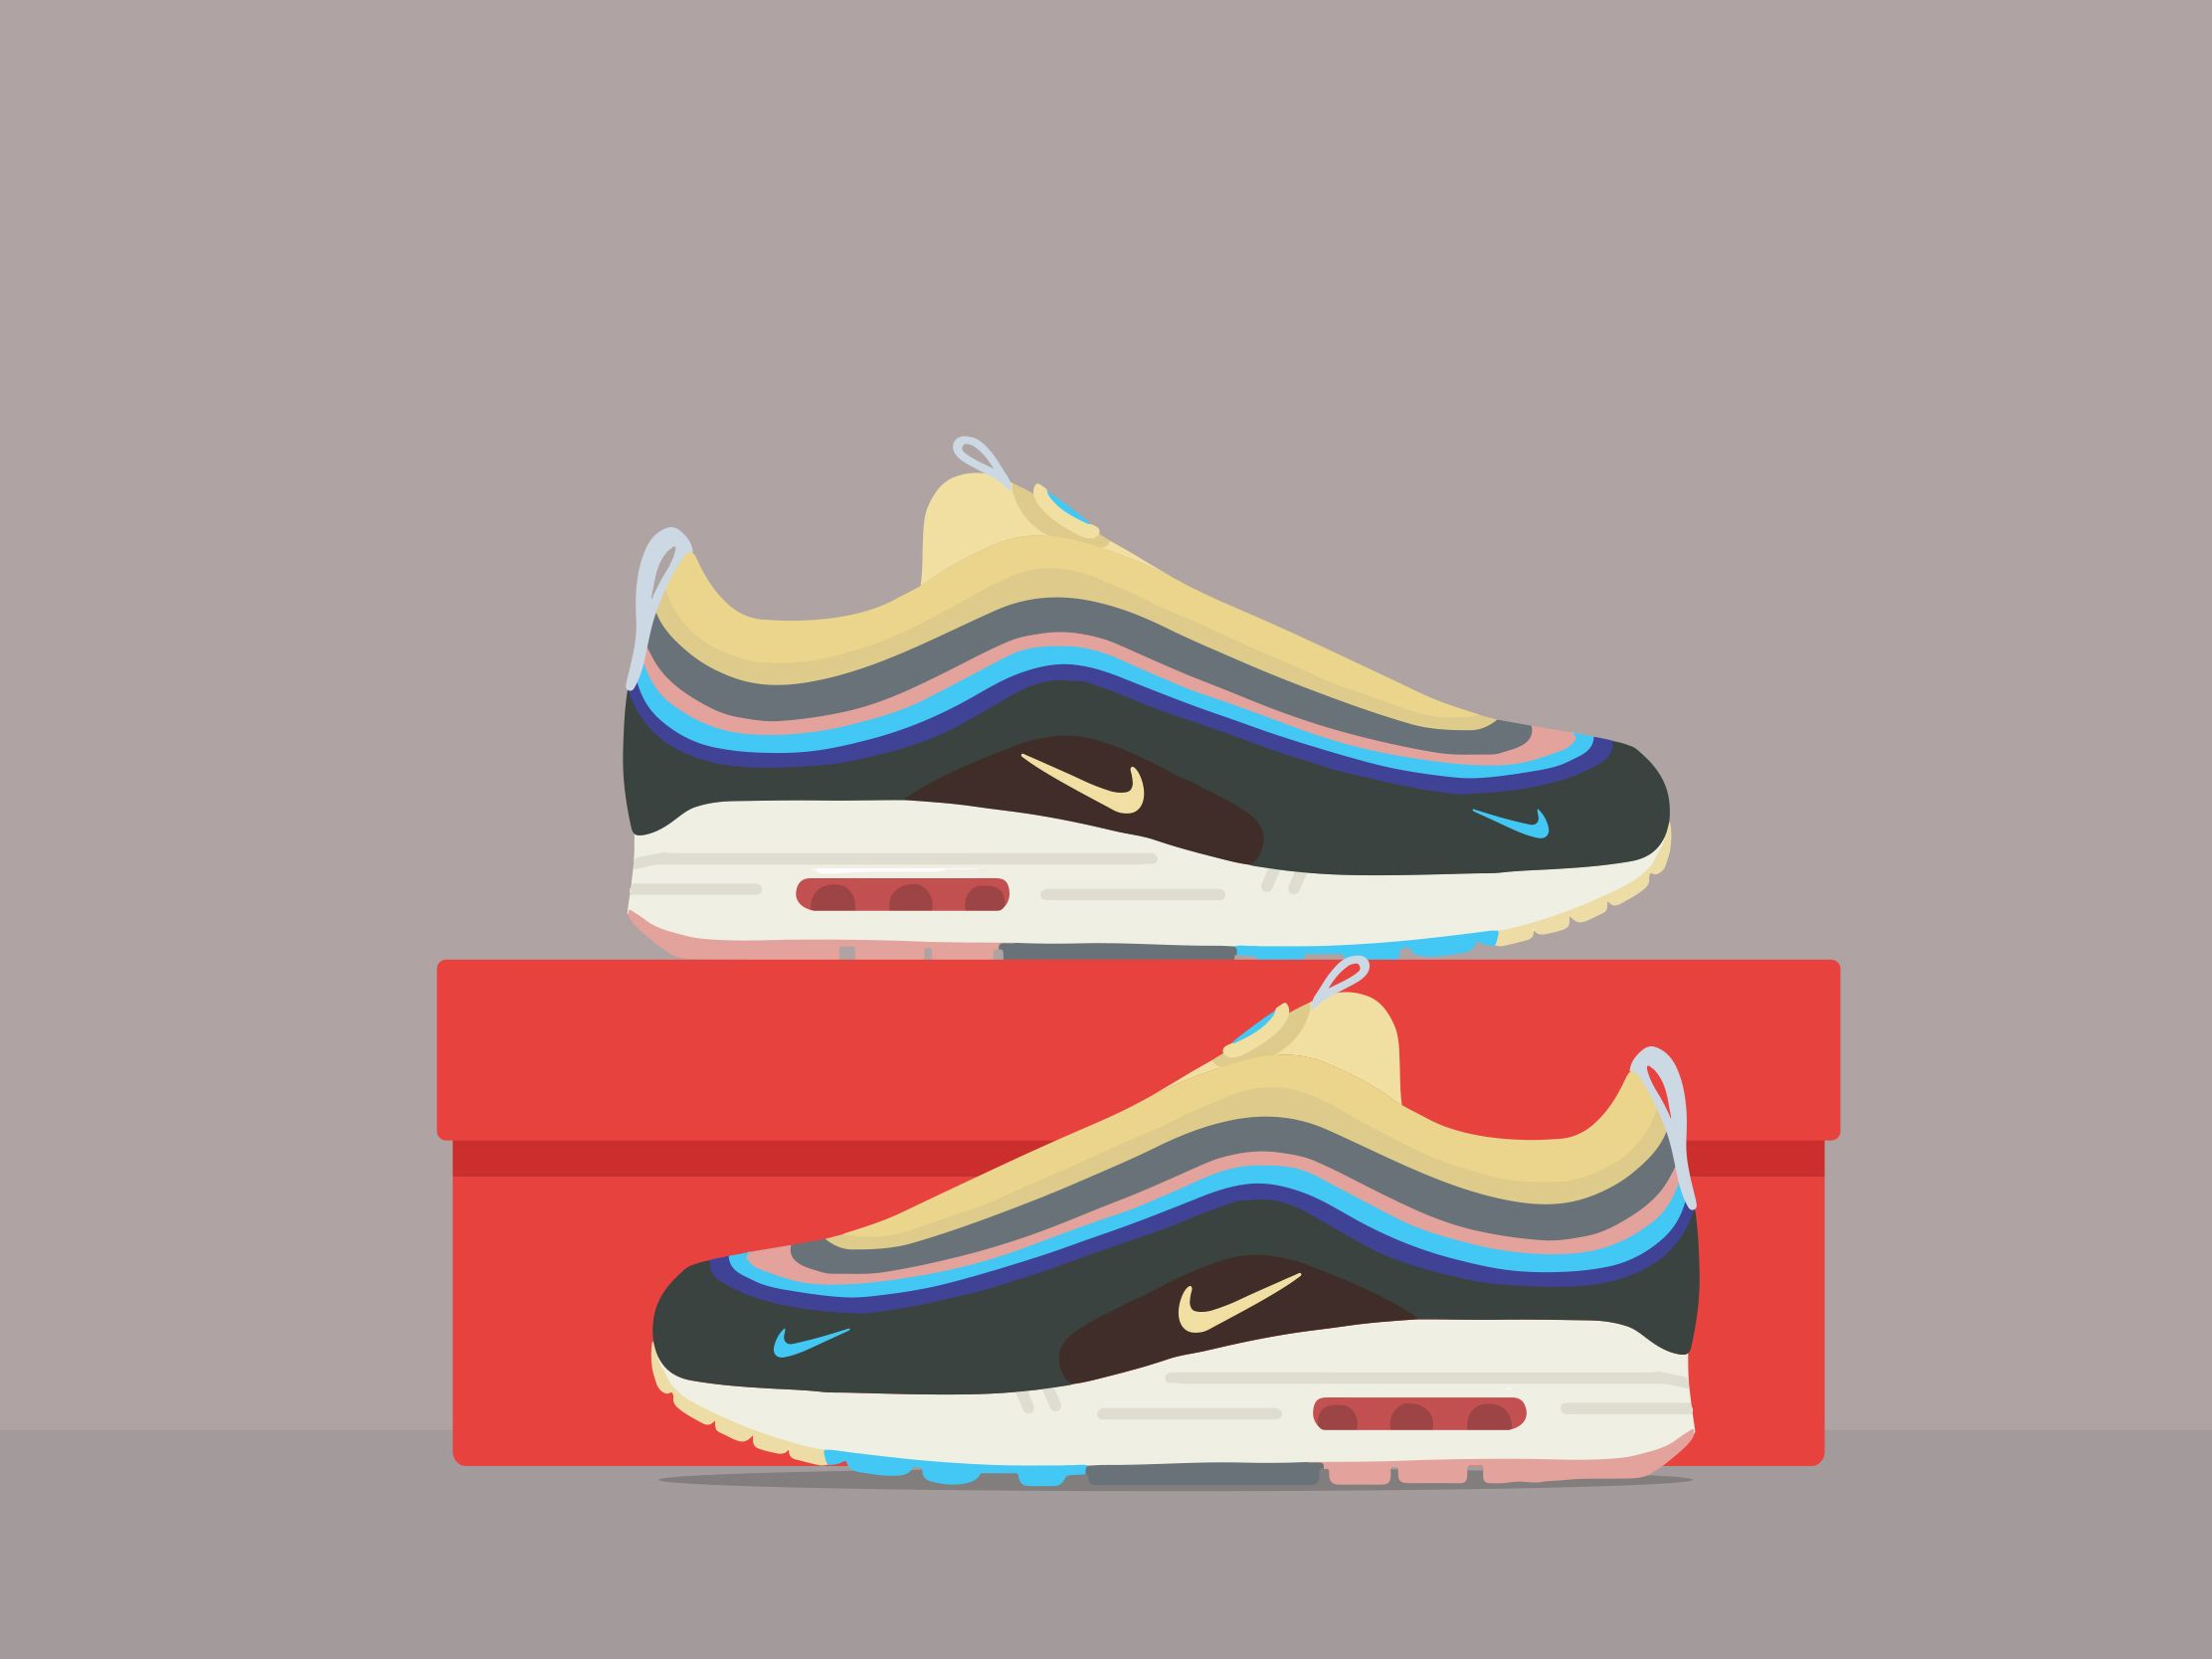 reputable site uk cheap sale classic shoes Nike Air Max 97/1 Sean Wotherspoon in 2019 | Air max 97, Air ...